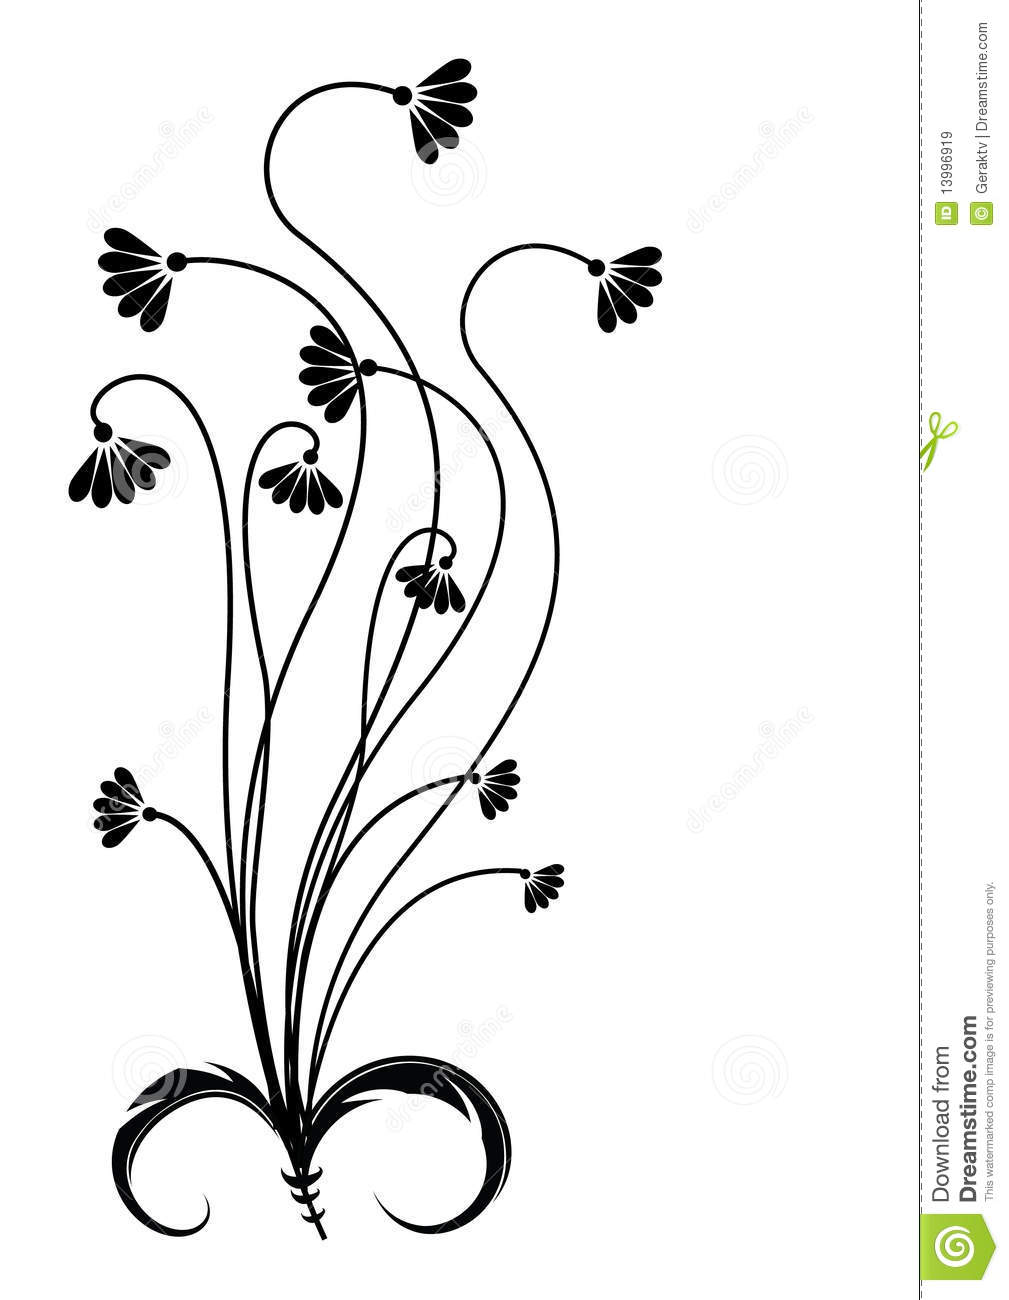 Flower graphic images vector freeuse library Flower graphic - ClipartFox vector freeuse library